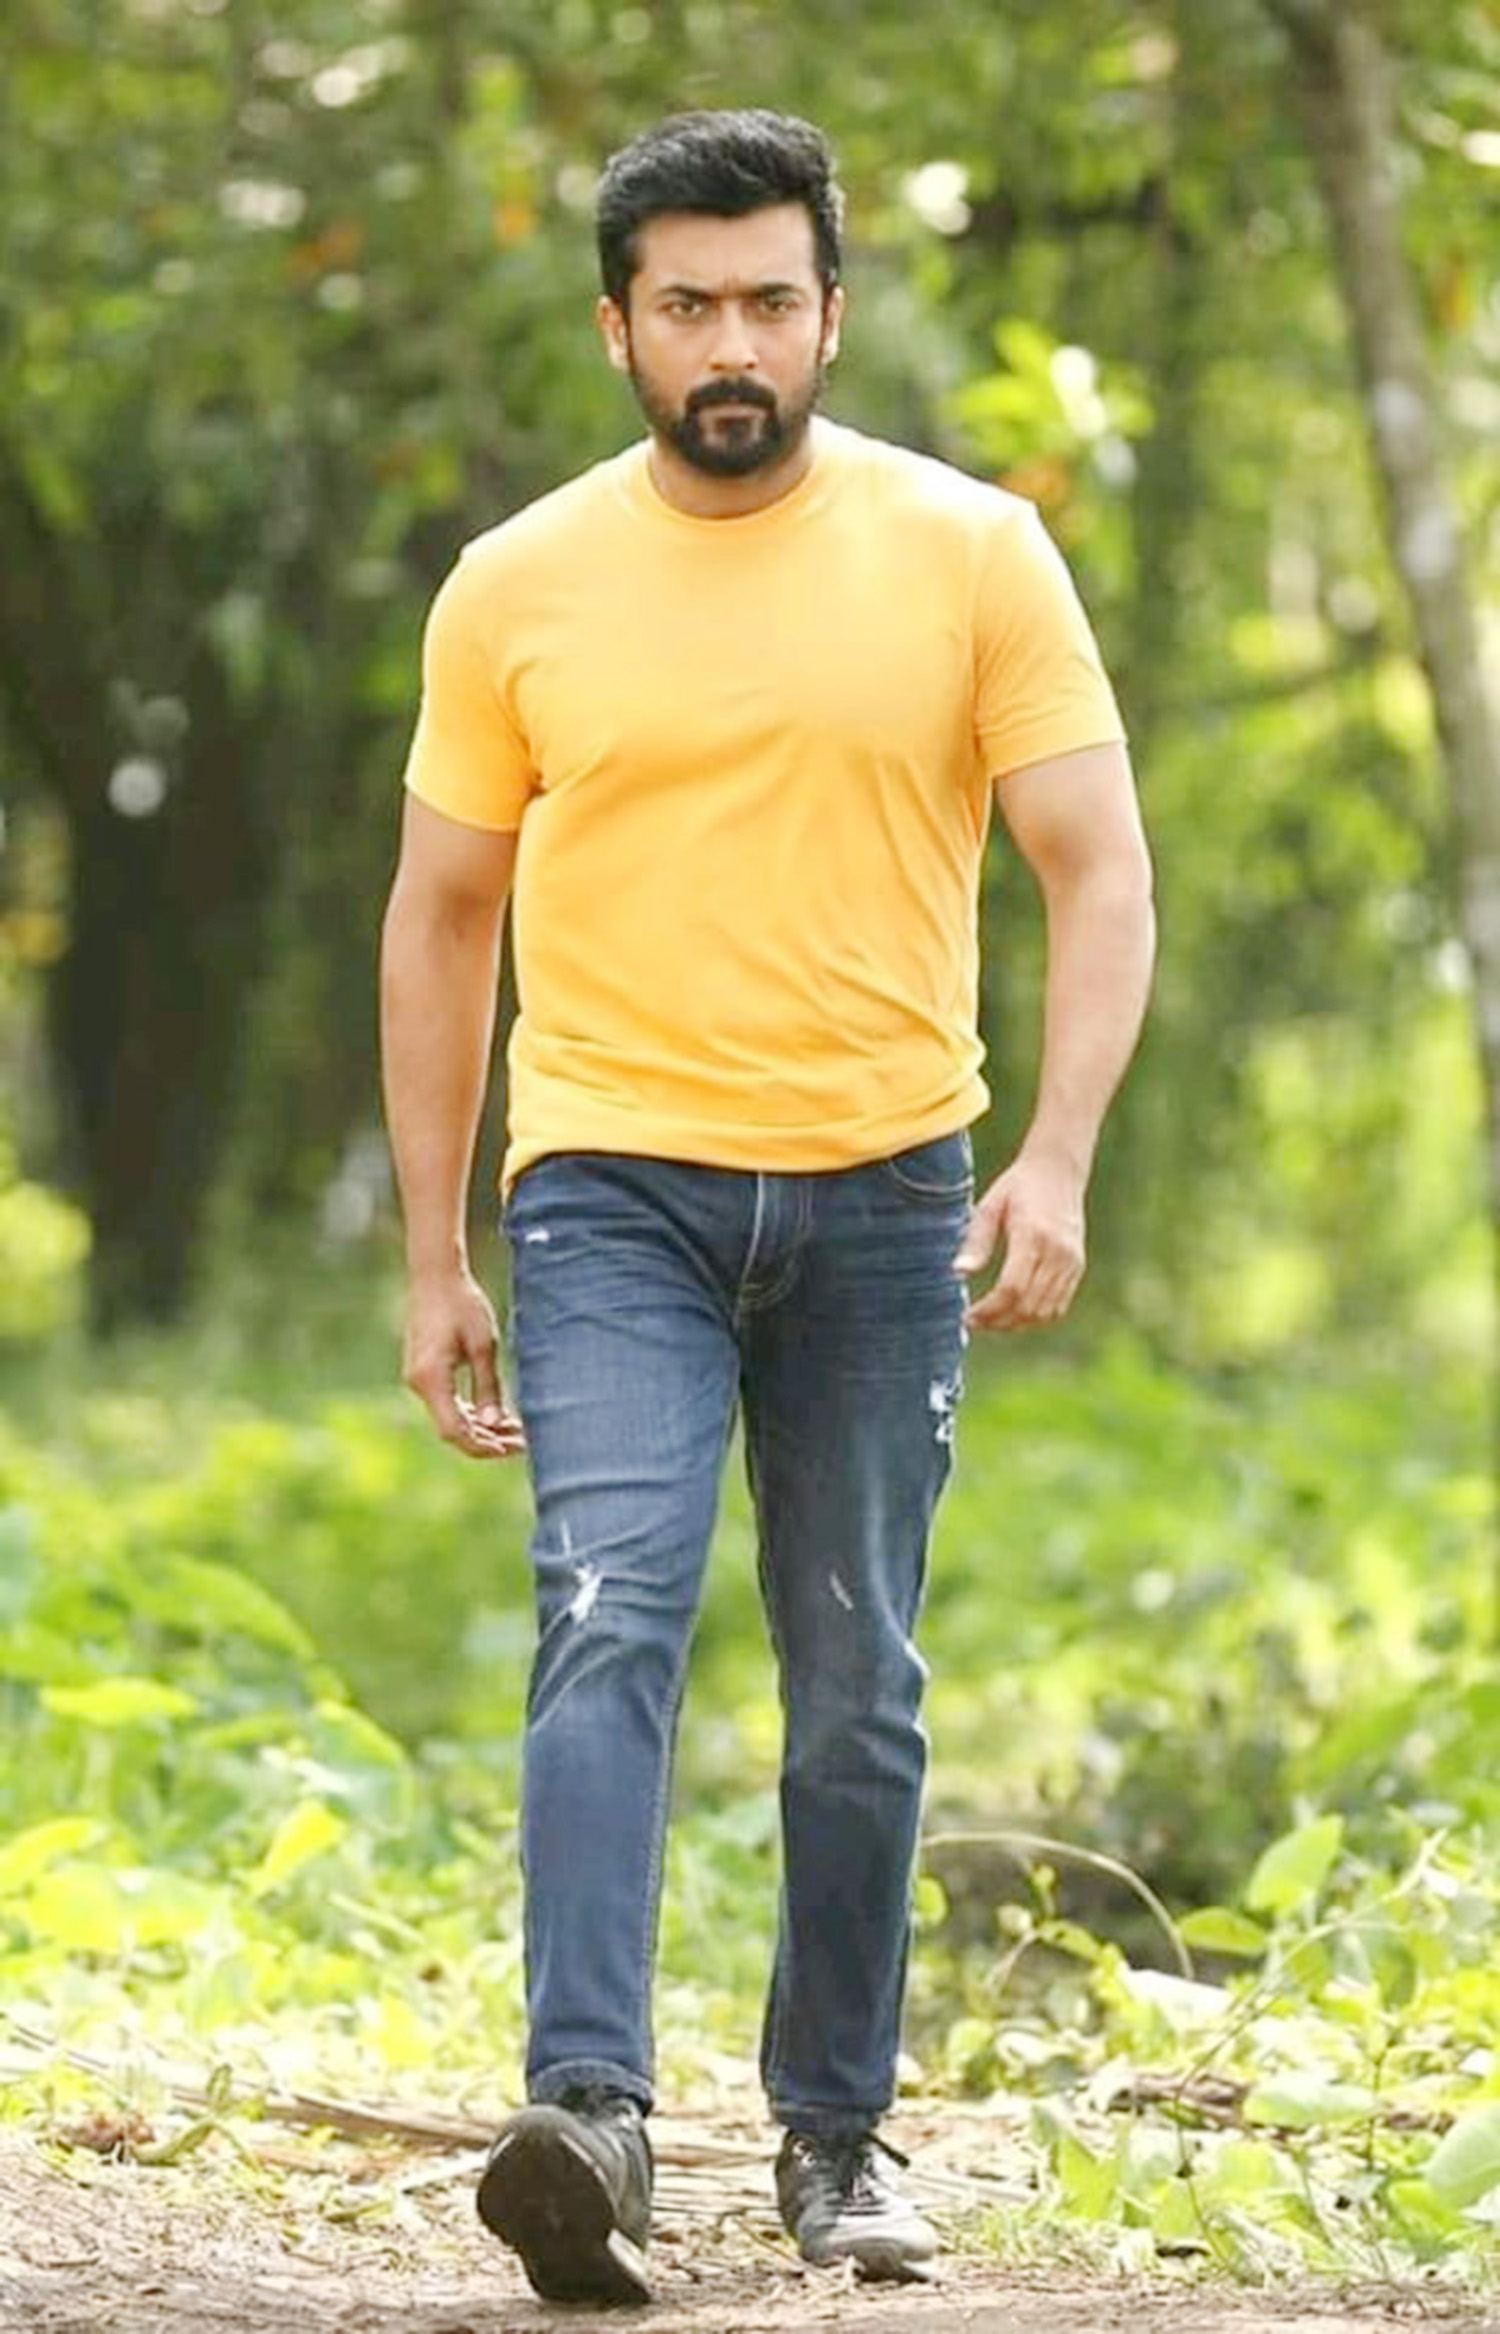 ngk stills,suriya in ngk,suriya's new stills from ngk,suriya latest stills from ngk,ngk tamil movie stills,suriya new movie stills,suriya latest movie stills,ngk poster,ngk suriya,ngk exclusive stills